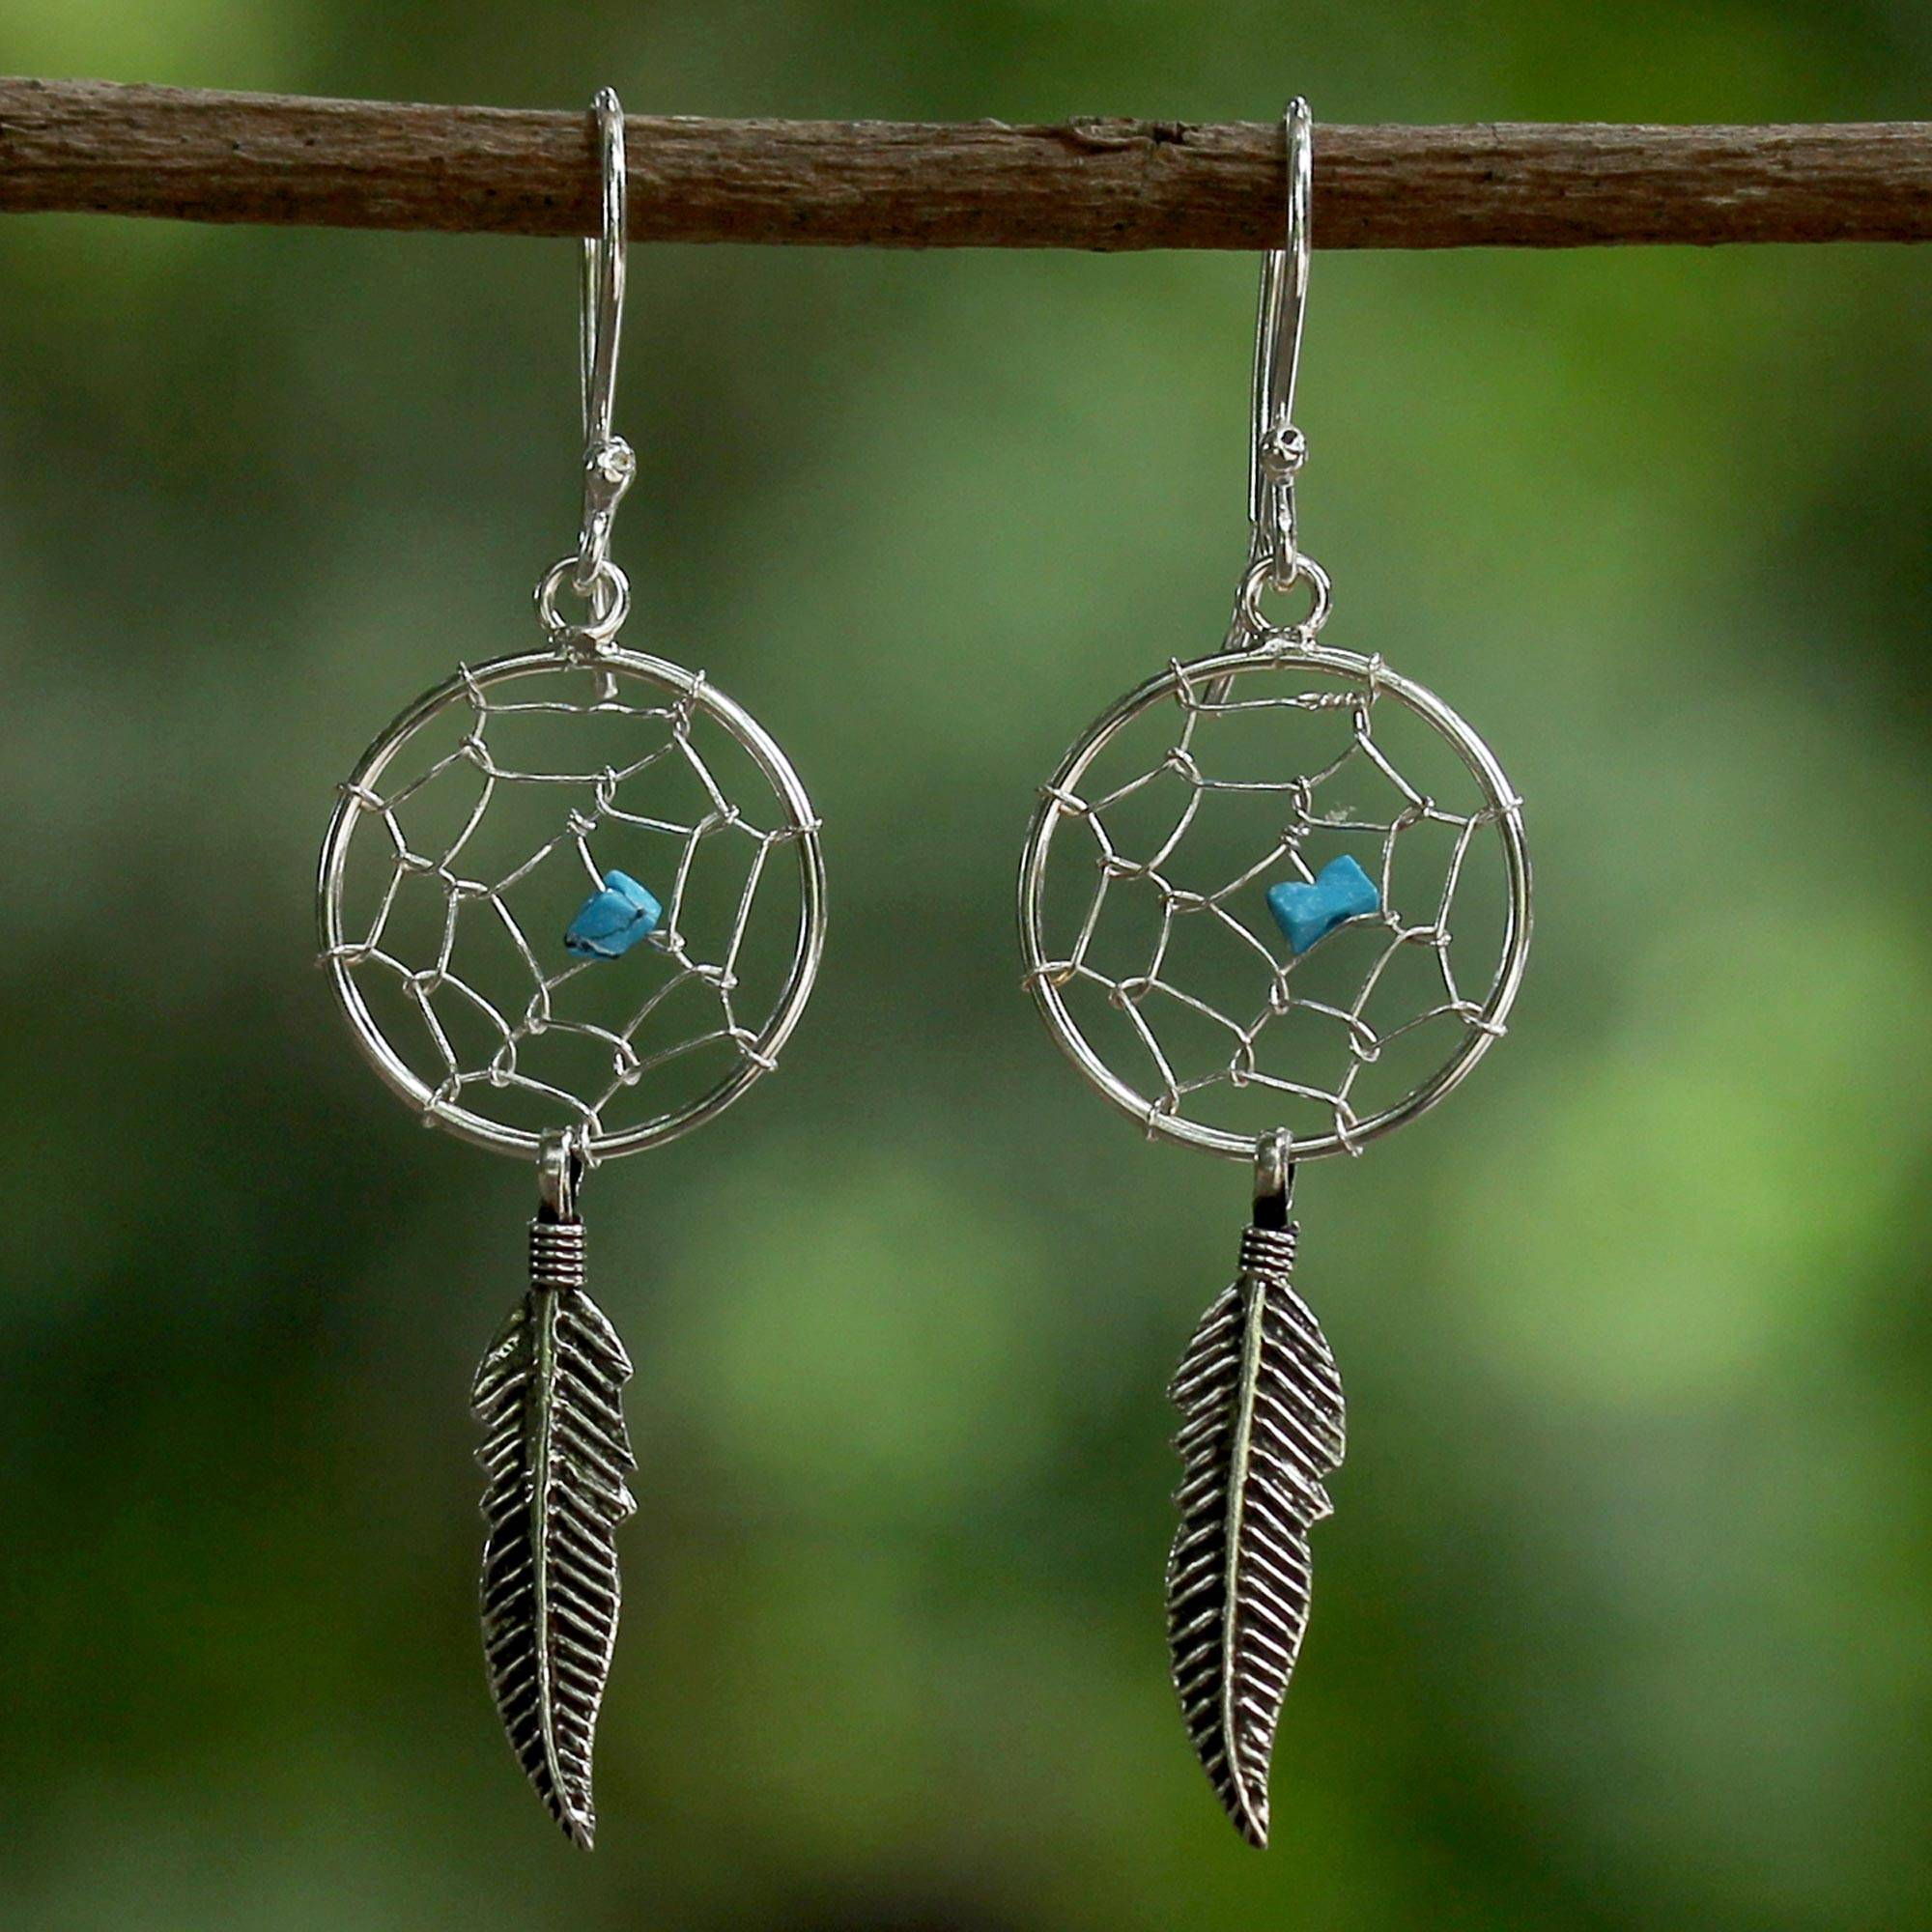 Sterling Silver and Sterling Silver Plated Dream Catcher Earrings